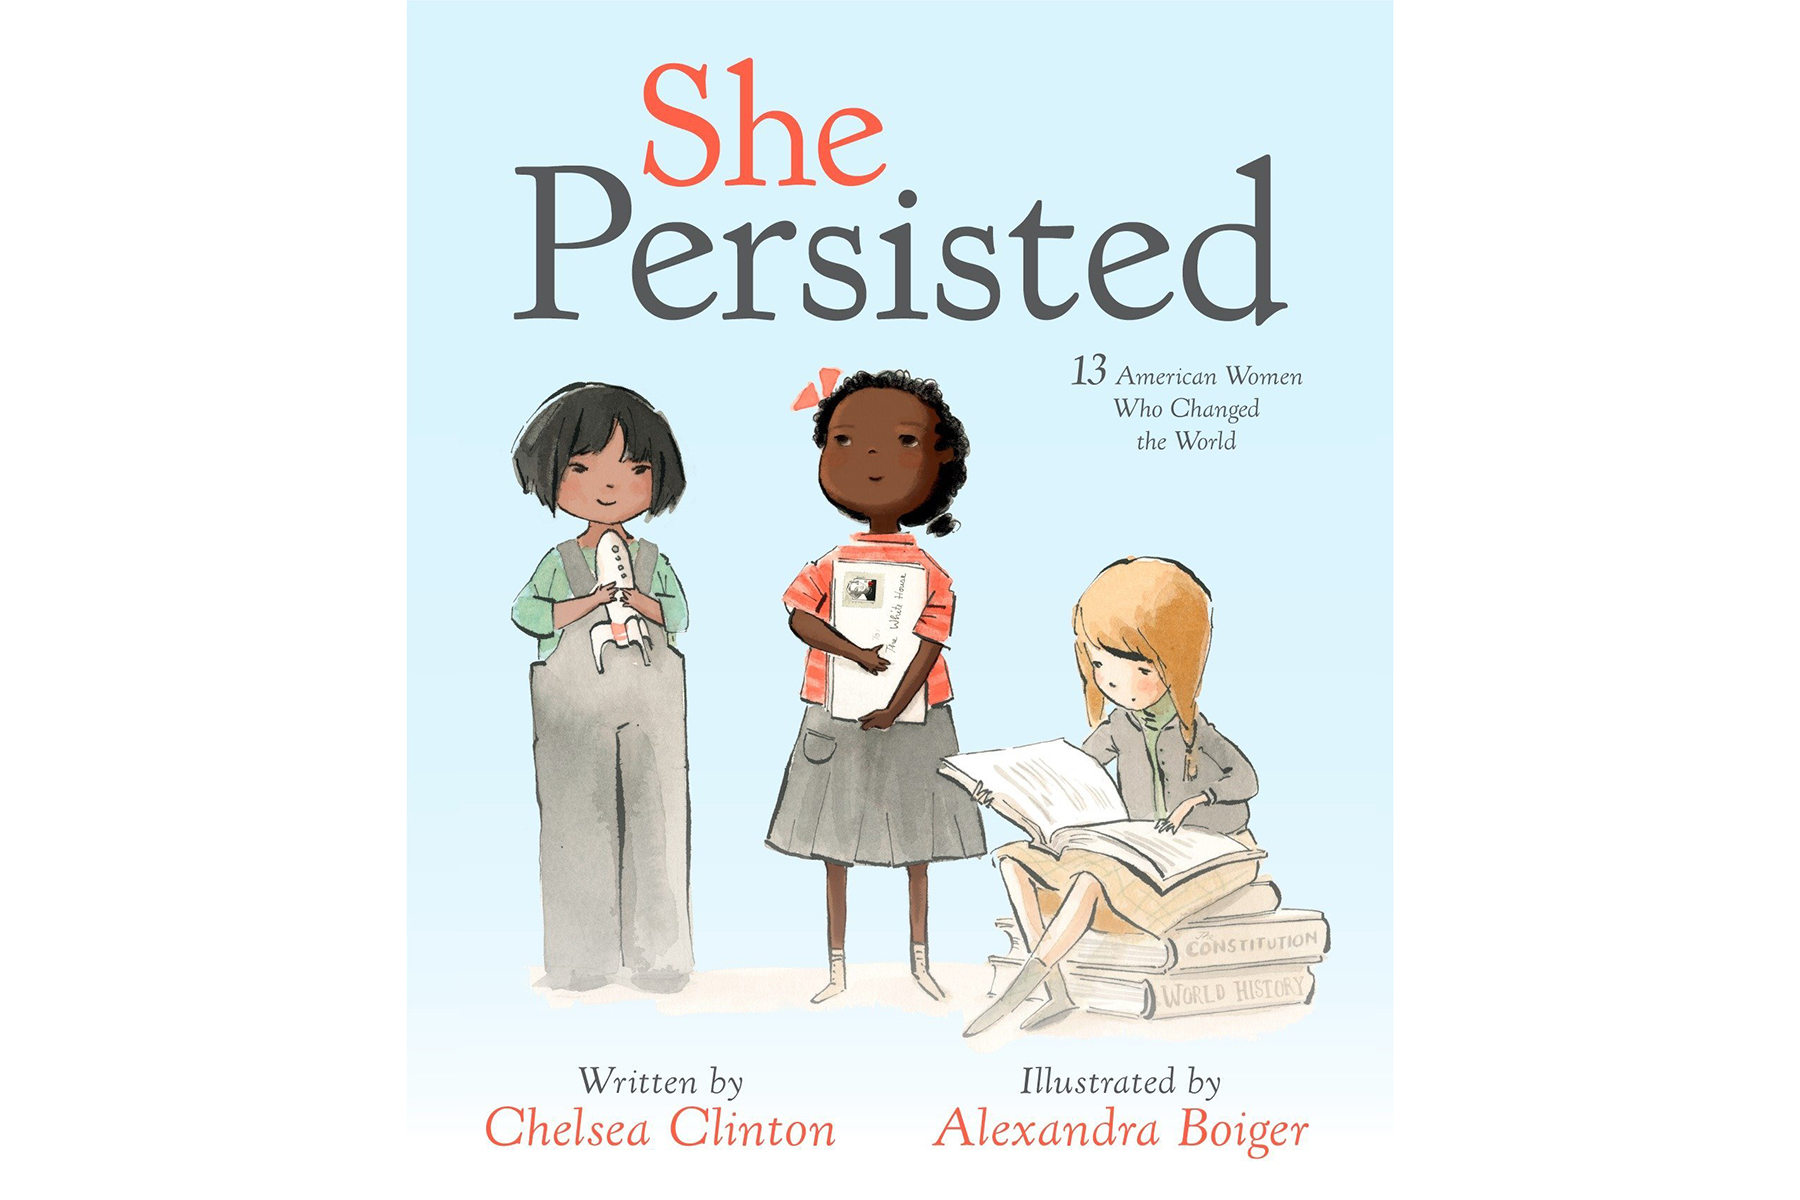 <em>She Persisted: 13 American Women Who Changed the World</em>, by Chelsea Clinton, Alexandra Boiger (Illustrator)